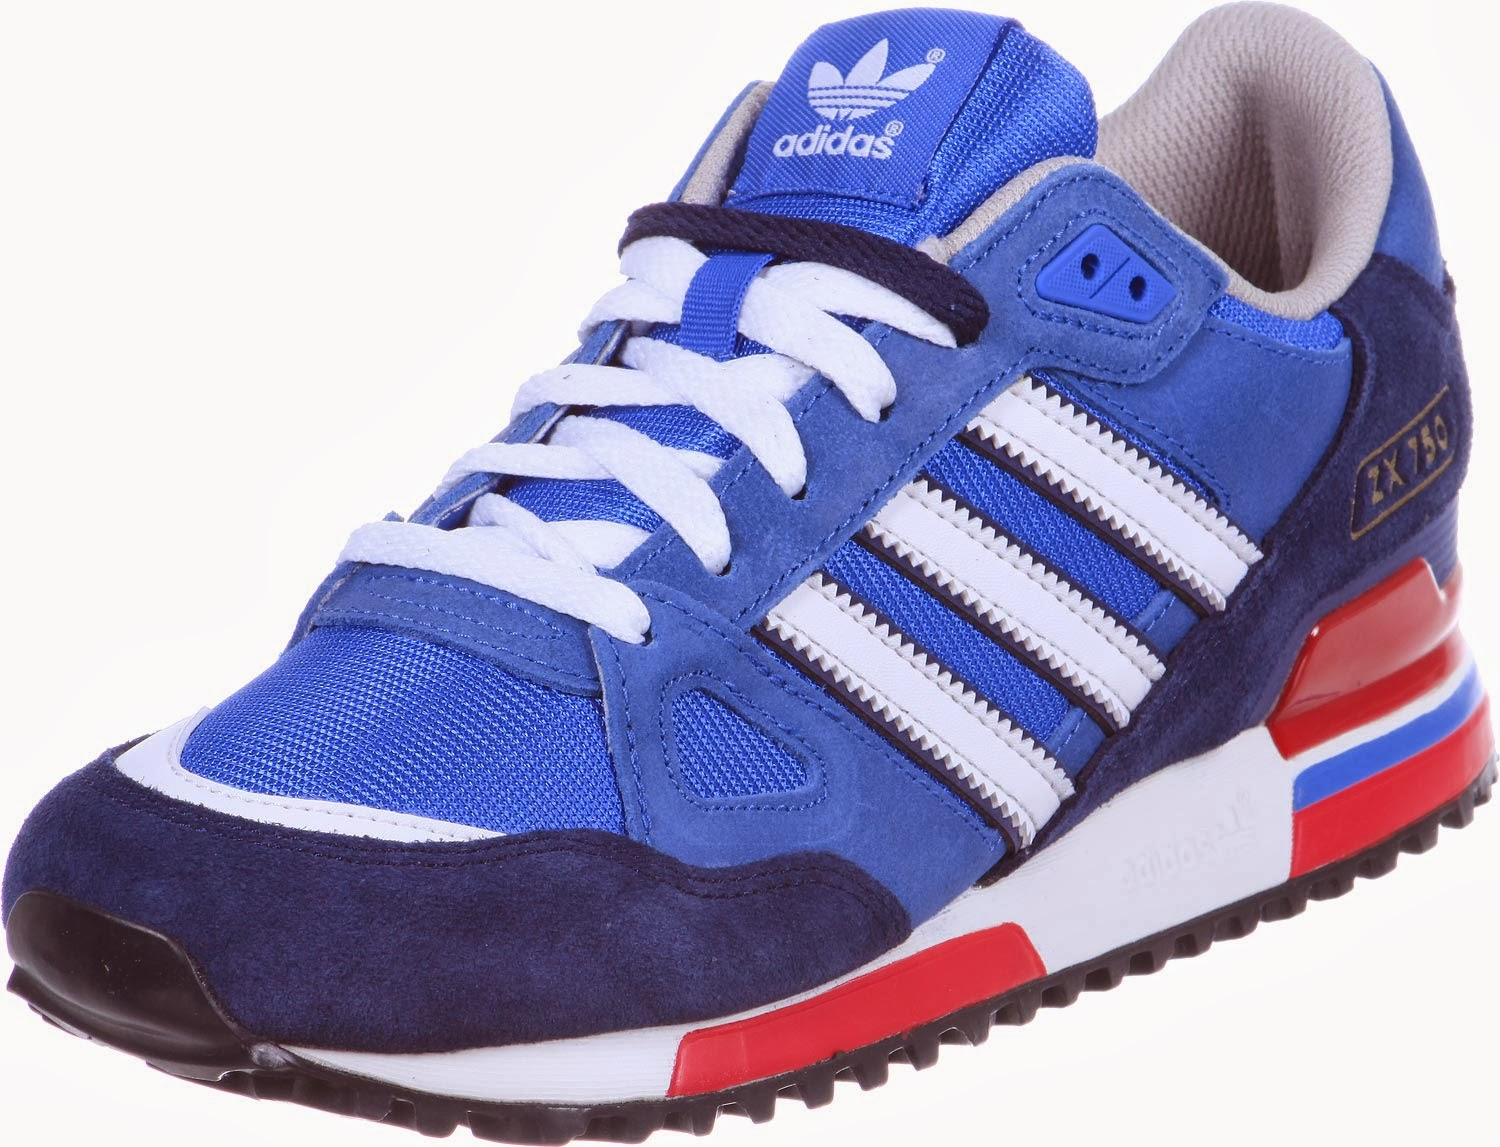 25ddd4540 adidas zx 750 photo. 630 shoes · adidas originals zx 500 Black ...